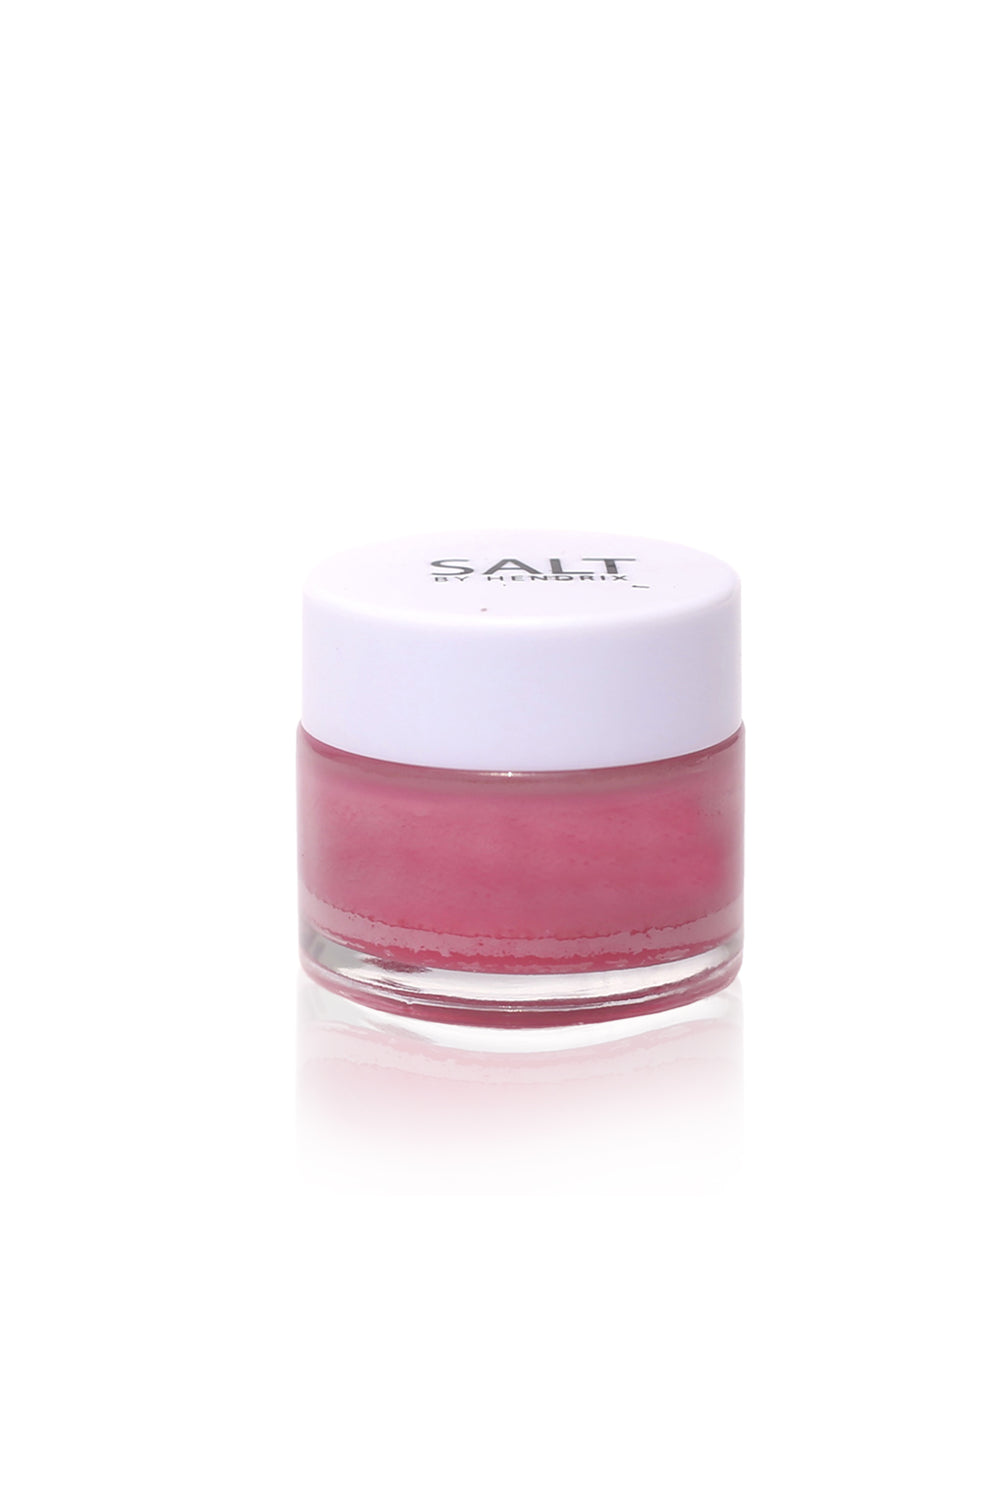 Salt by Hendrix - Lip Butter - Blush